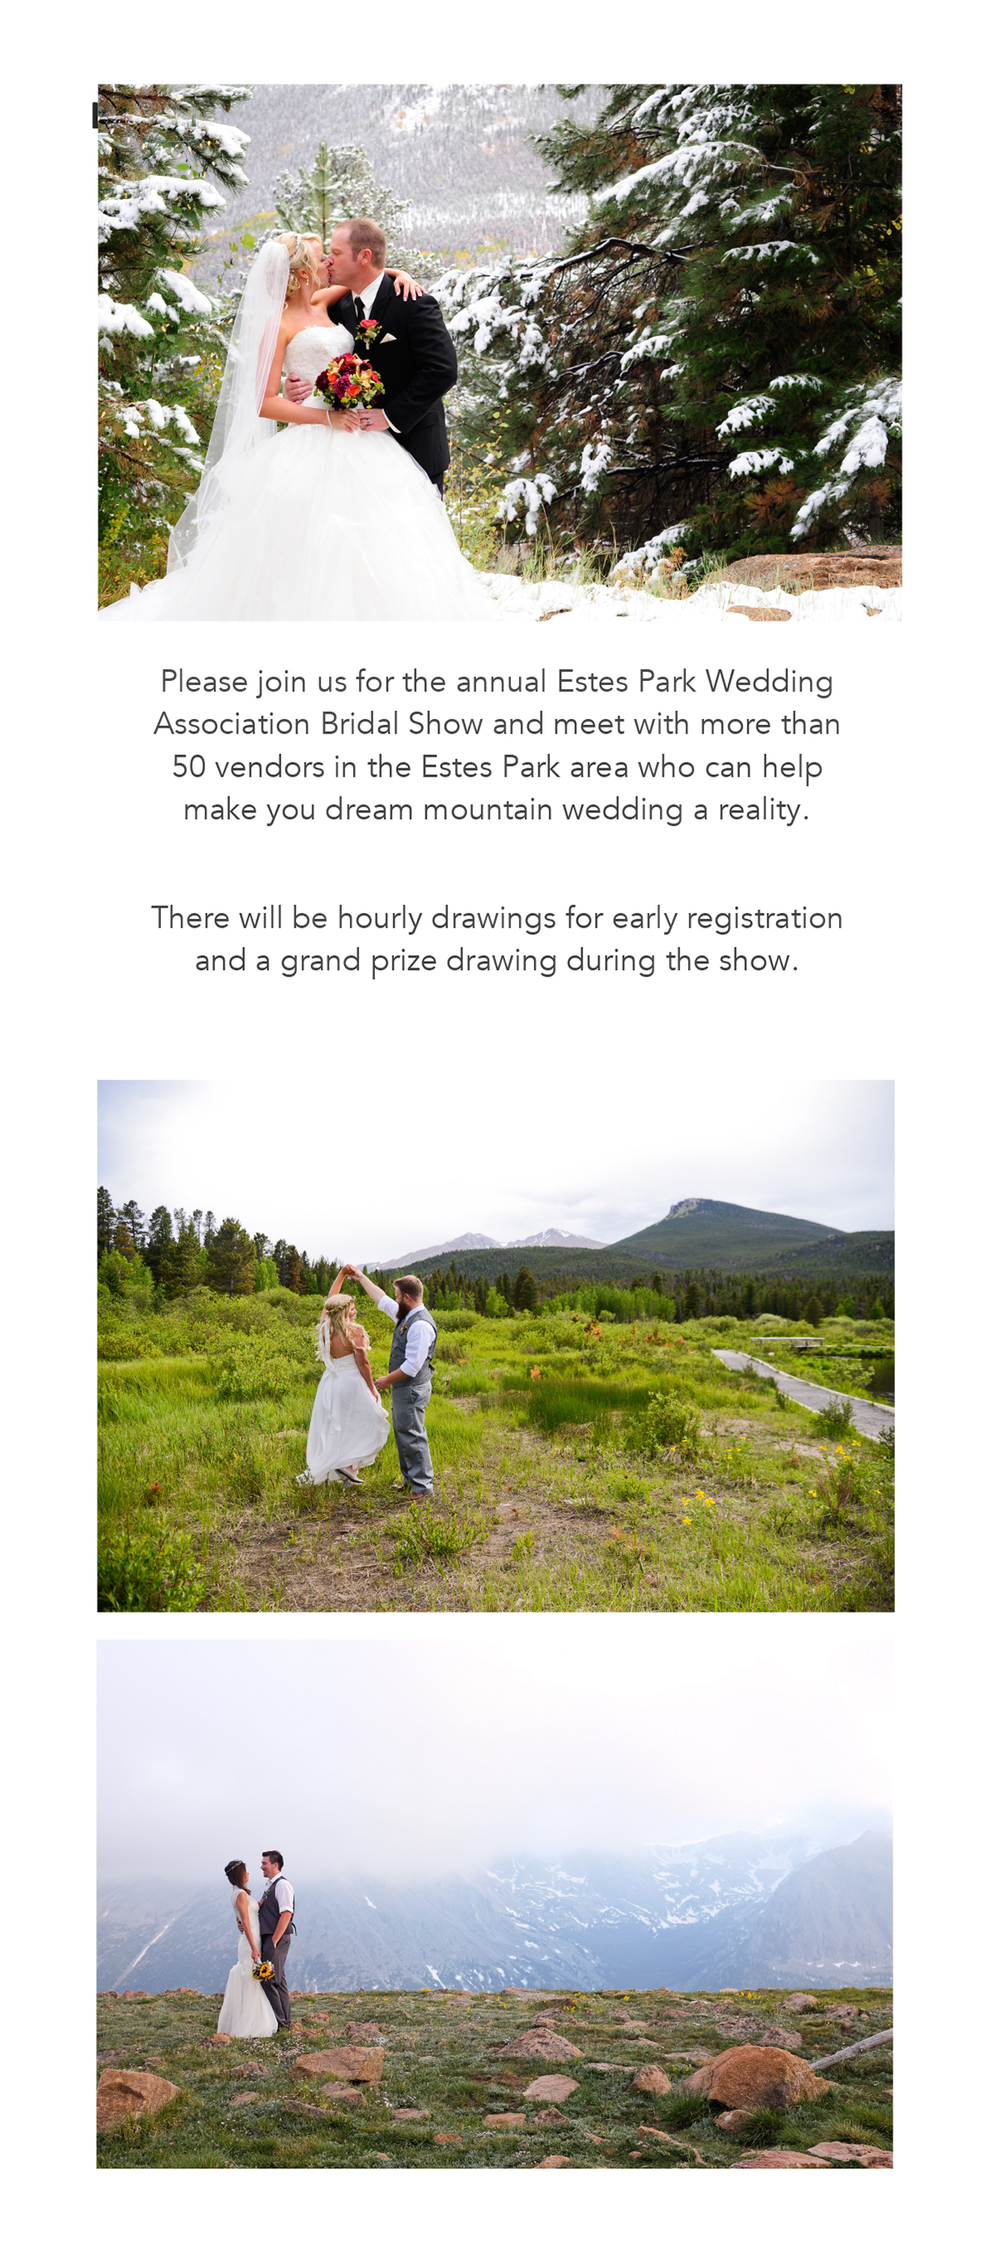 Estes Park Wedding Association